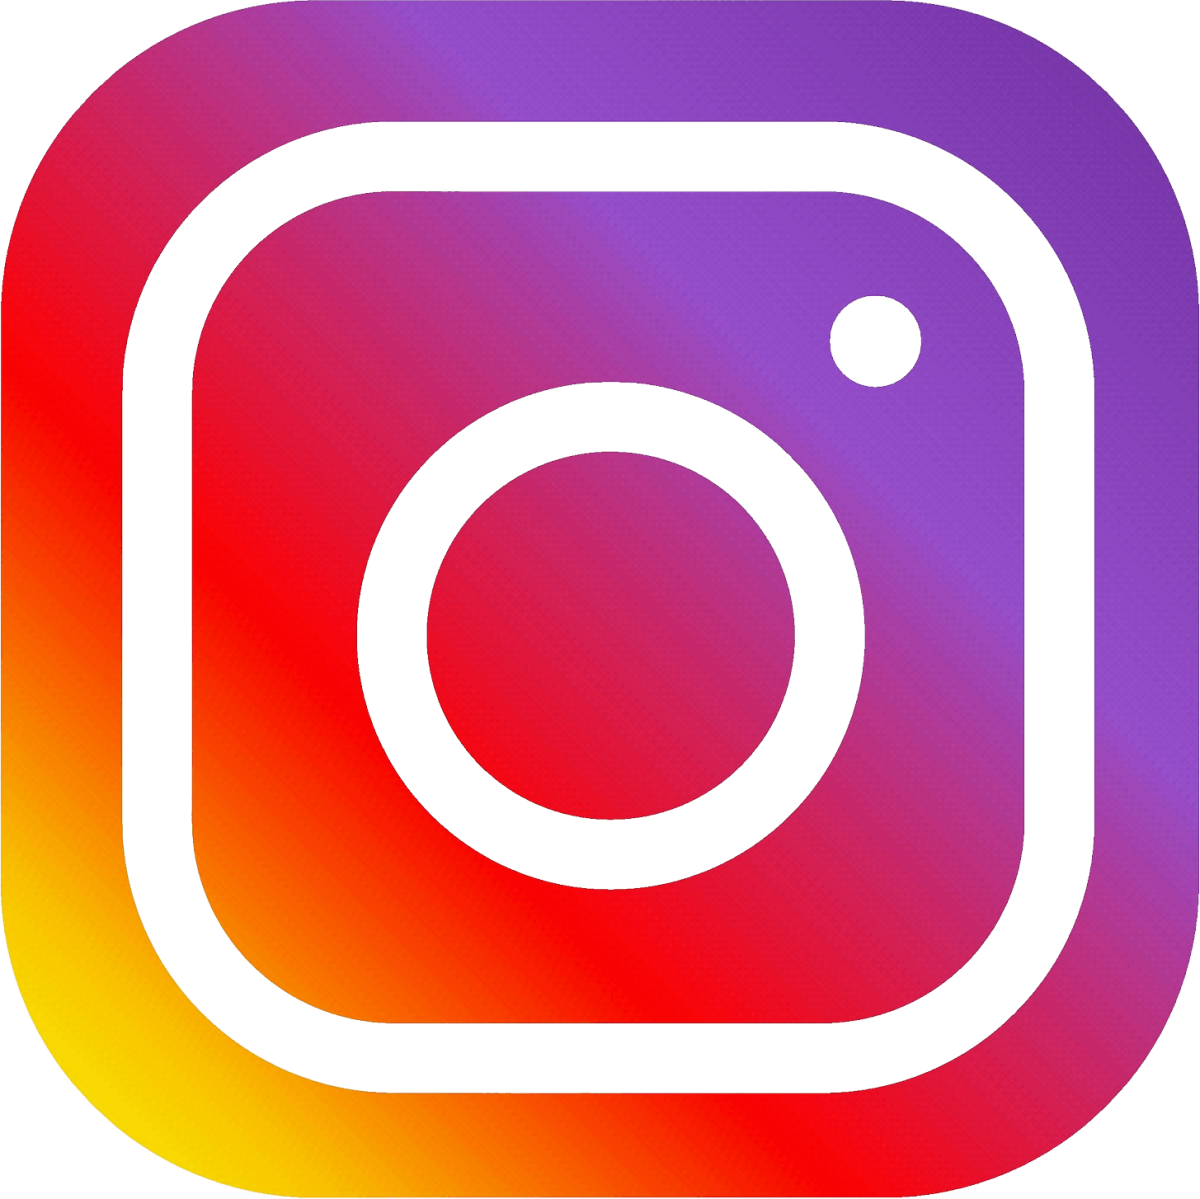 Instagram PNG icon image with transparent background